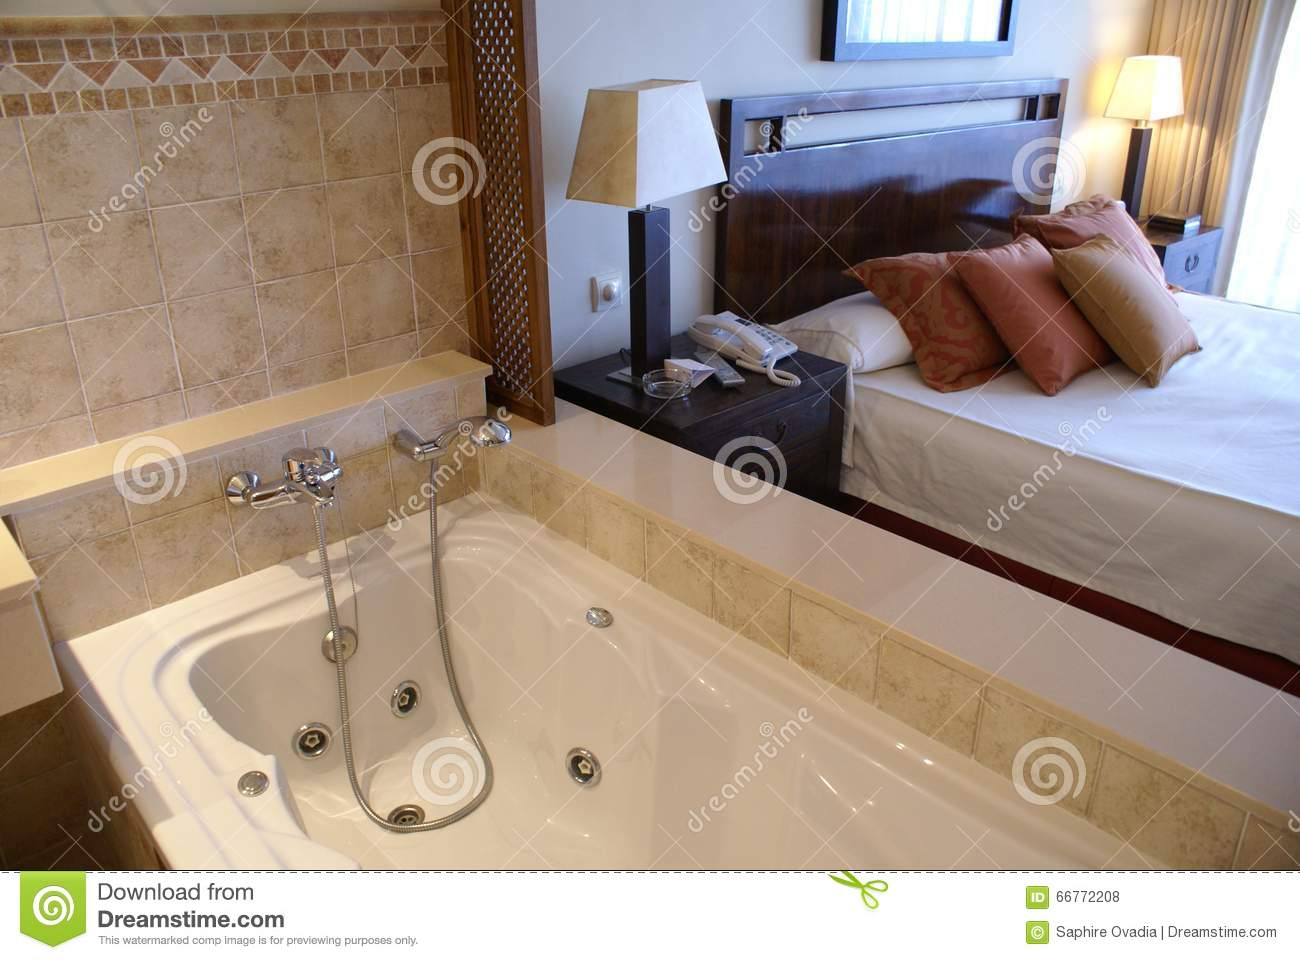 Jacuzzi Hot Tub Bath Spa Stock Photo Image Of Bathroom